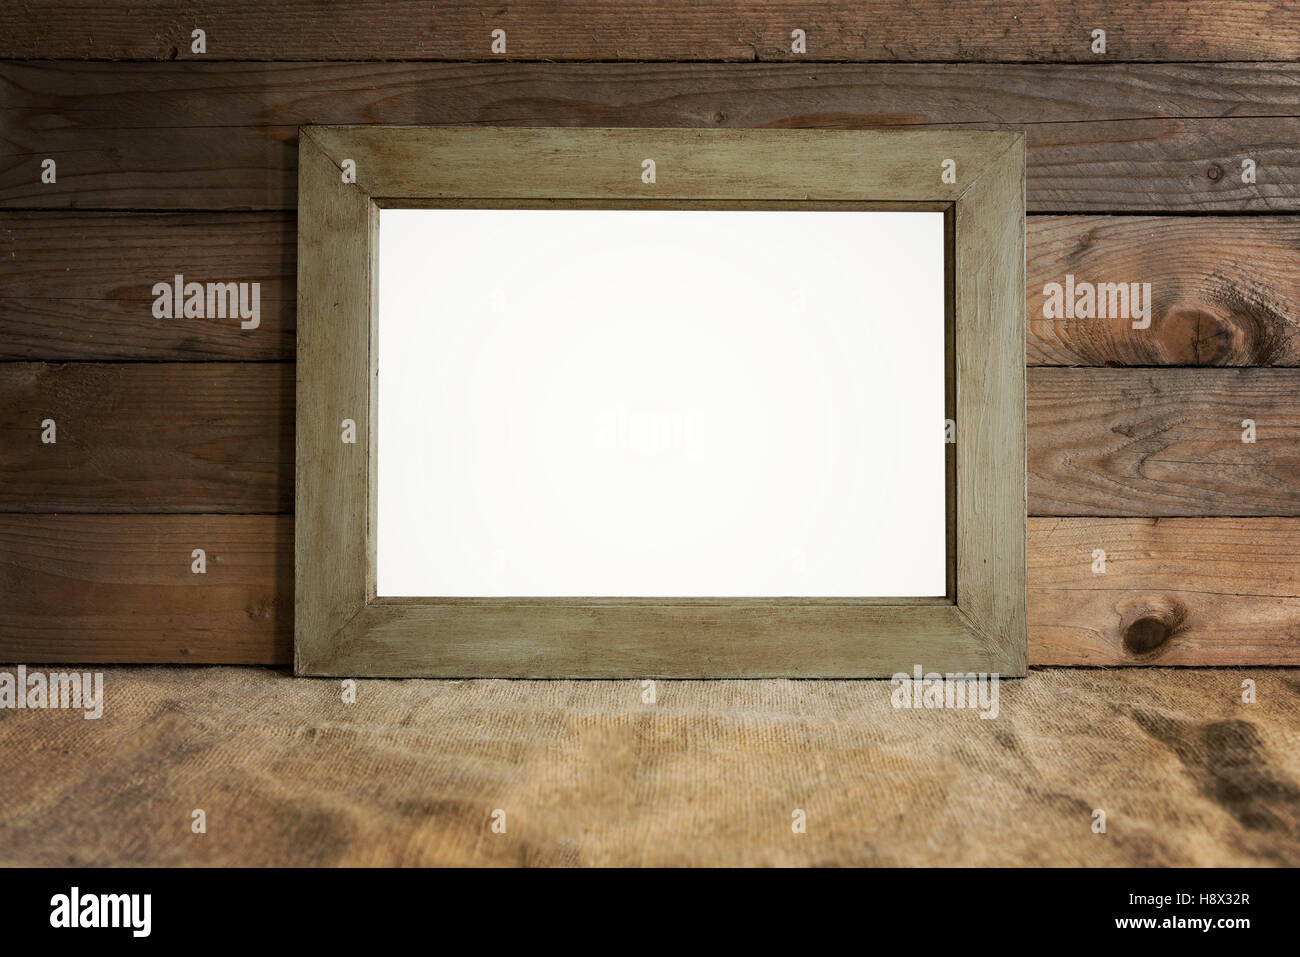 Rustic frame mockup scene with wooden background and burlap Stock ...